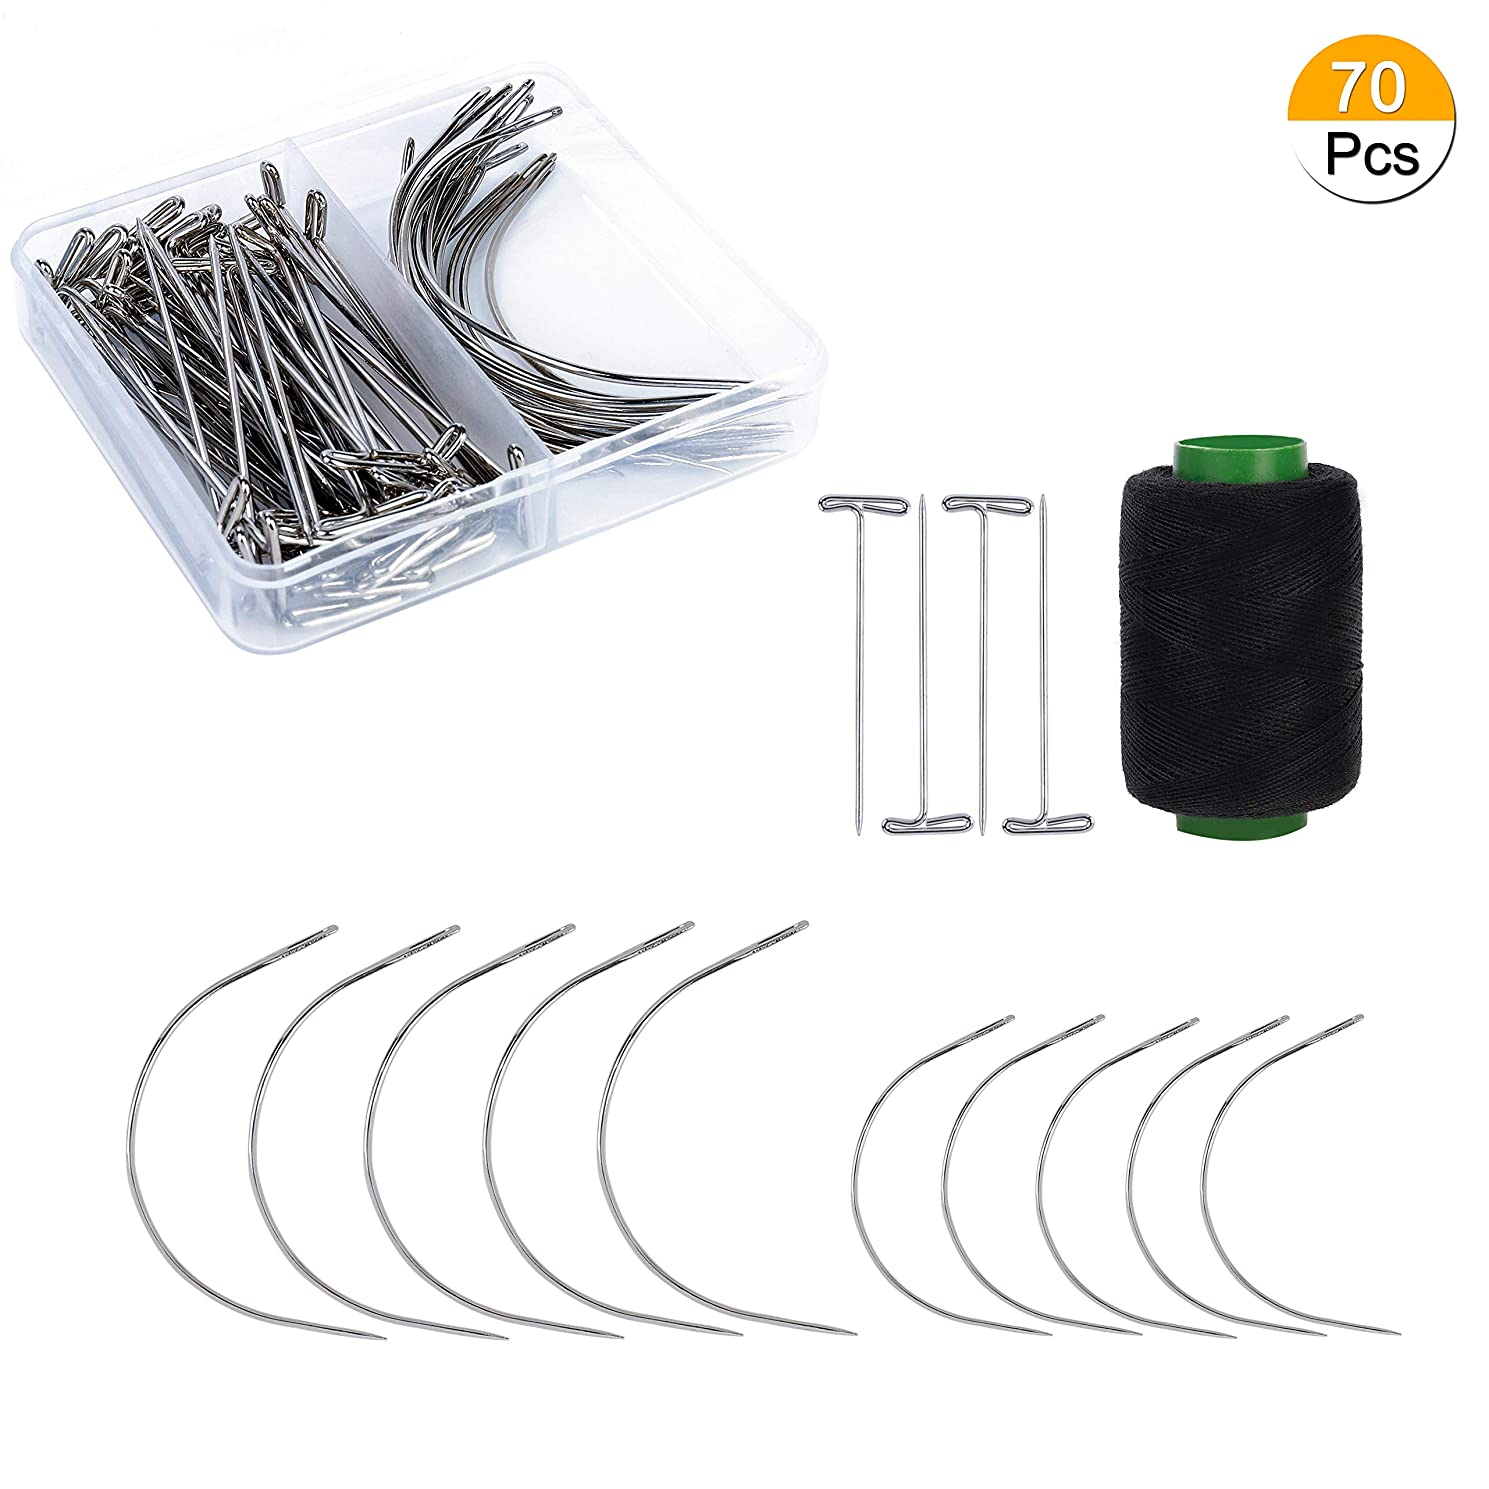 Wig Pins, T-pins and C Curved Needles Set Stainless Steel 70PCS for Hair Weave Extension with 328 Yards Thread, Lace Wigs, Knitting Craft